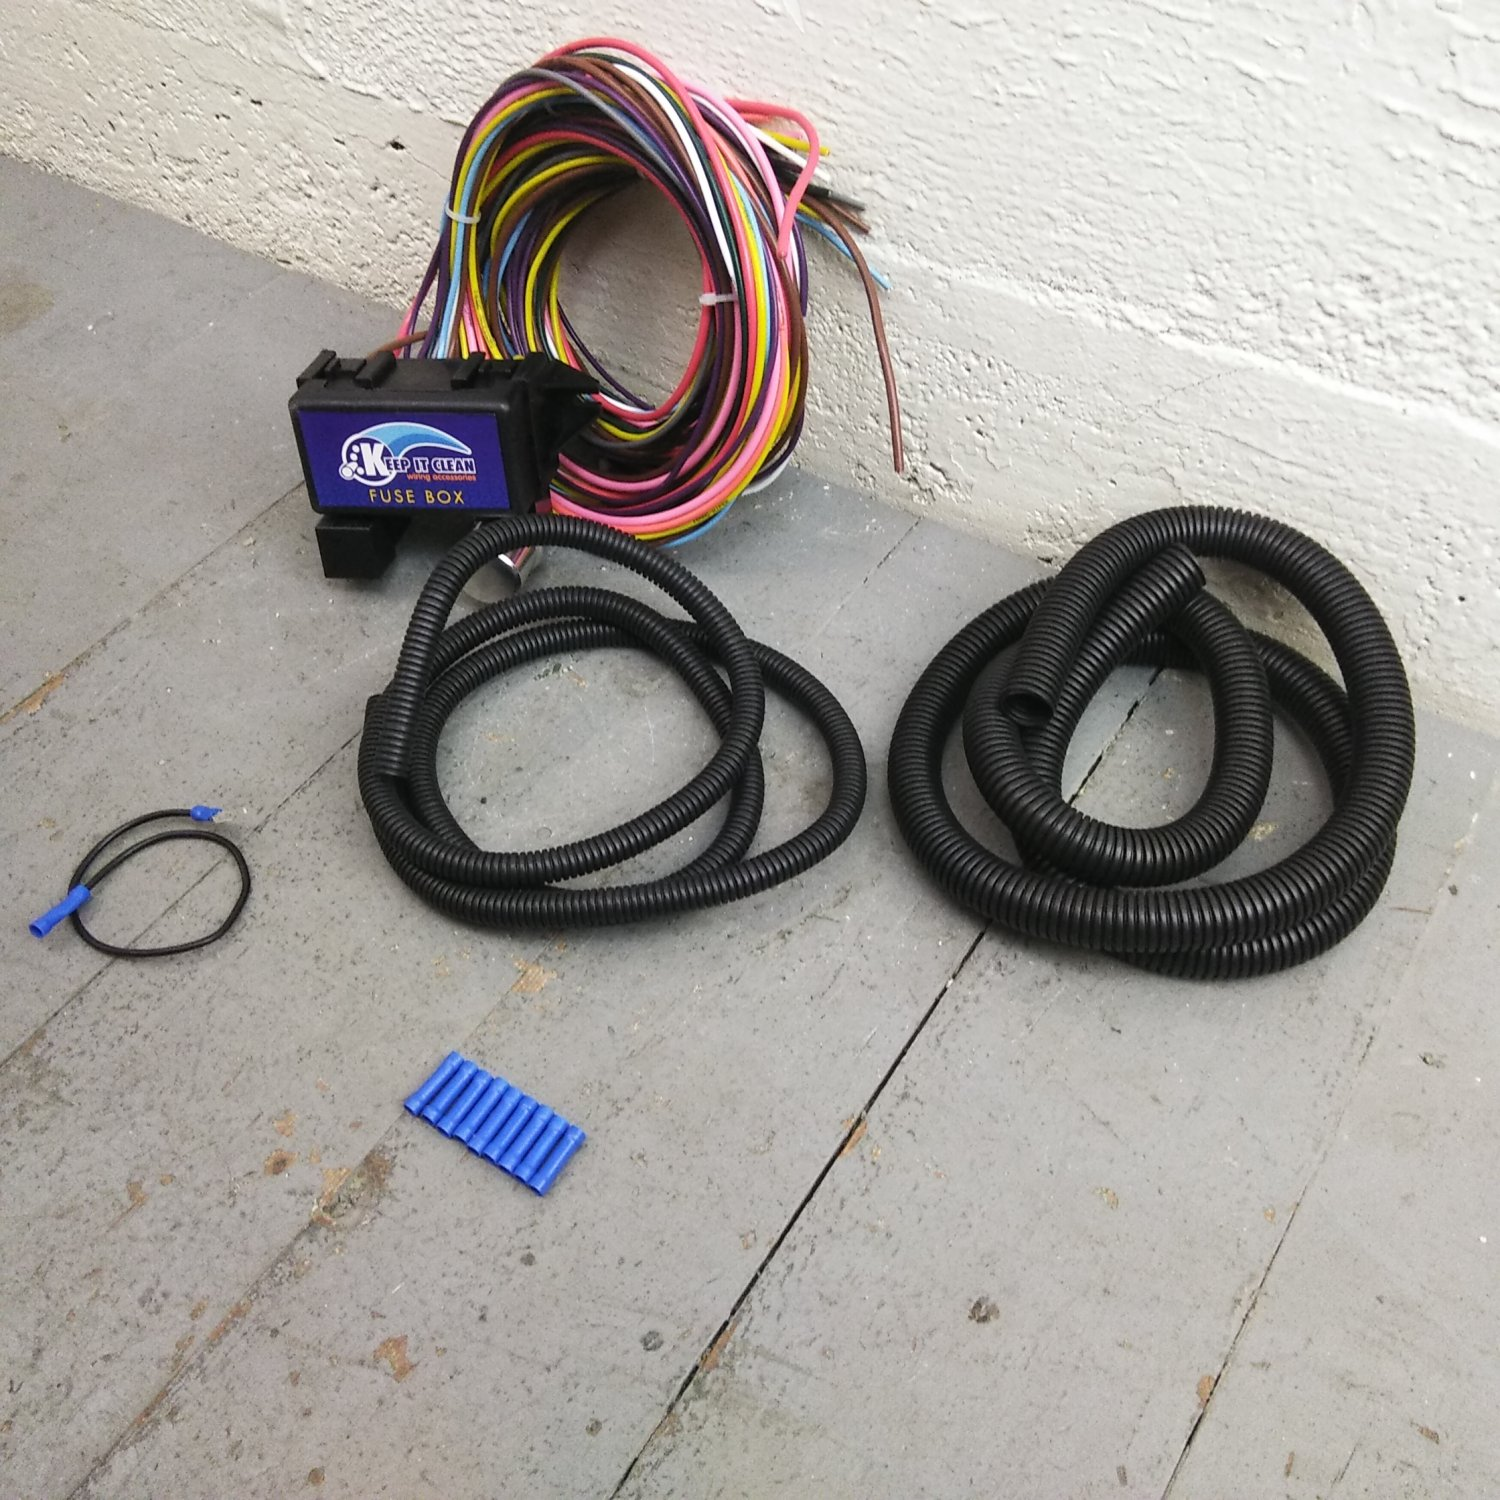 hight resolution of 12 fuse universal wiring harness kit 1956 ford 1955 ford ebay 12 fuse universal wiring harness kit 1956 ford 1955 ford ebay